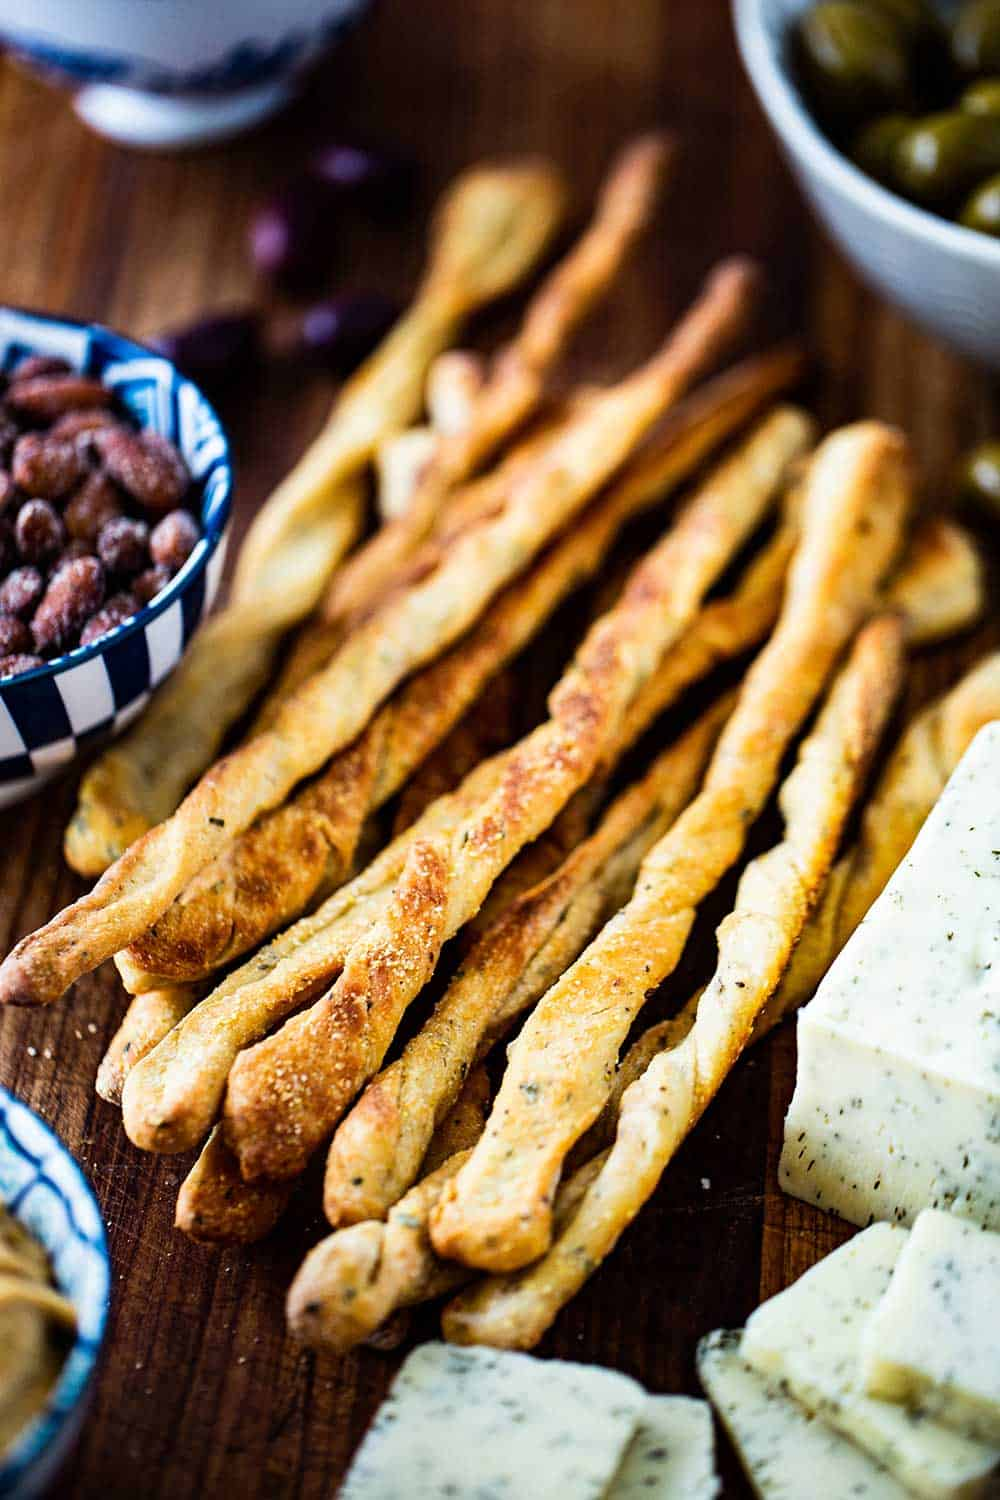 A pile of baked grissini, also known as Italian breadsticks, on a board next to a block of cheese that has been sliced and a bowl of spiced nuts.